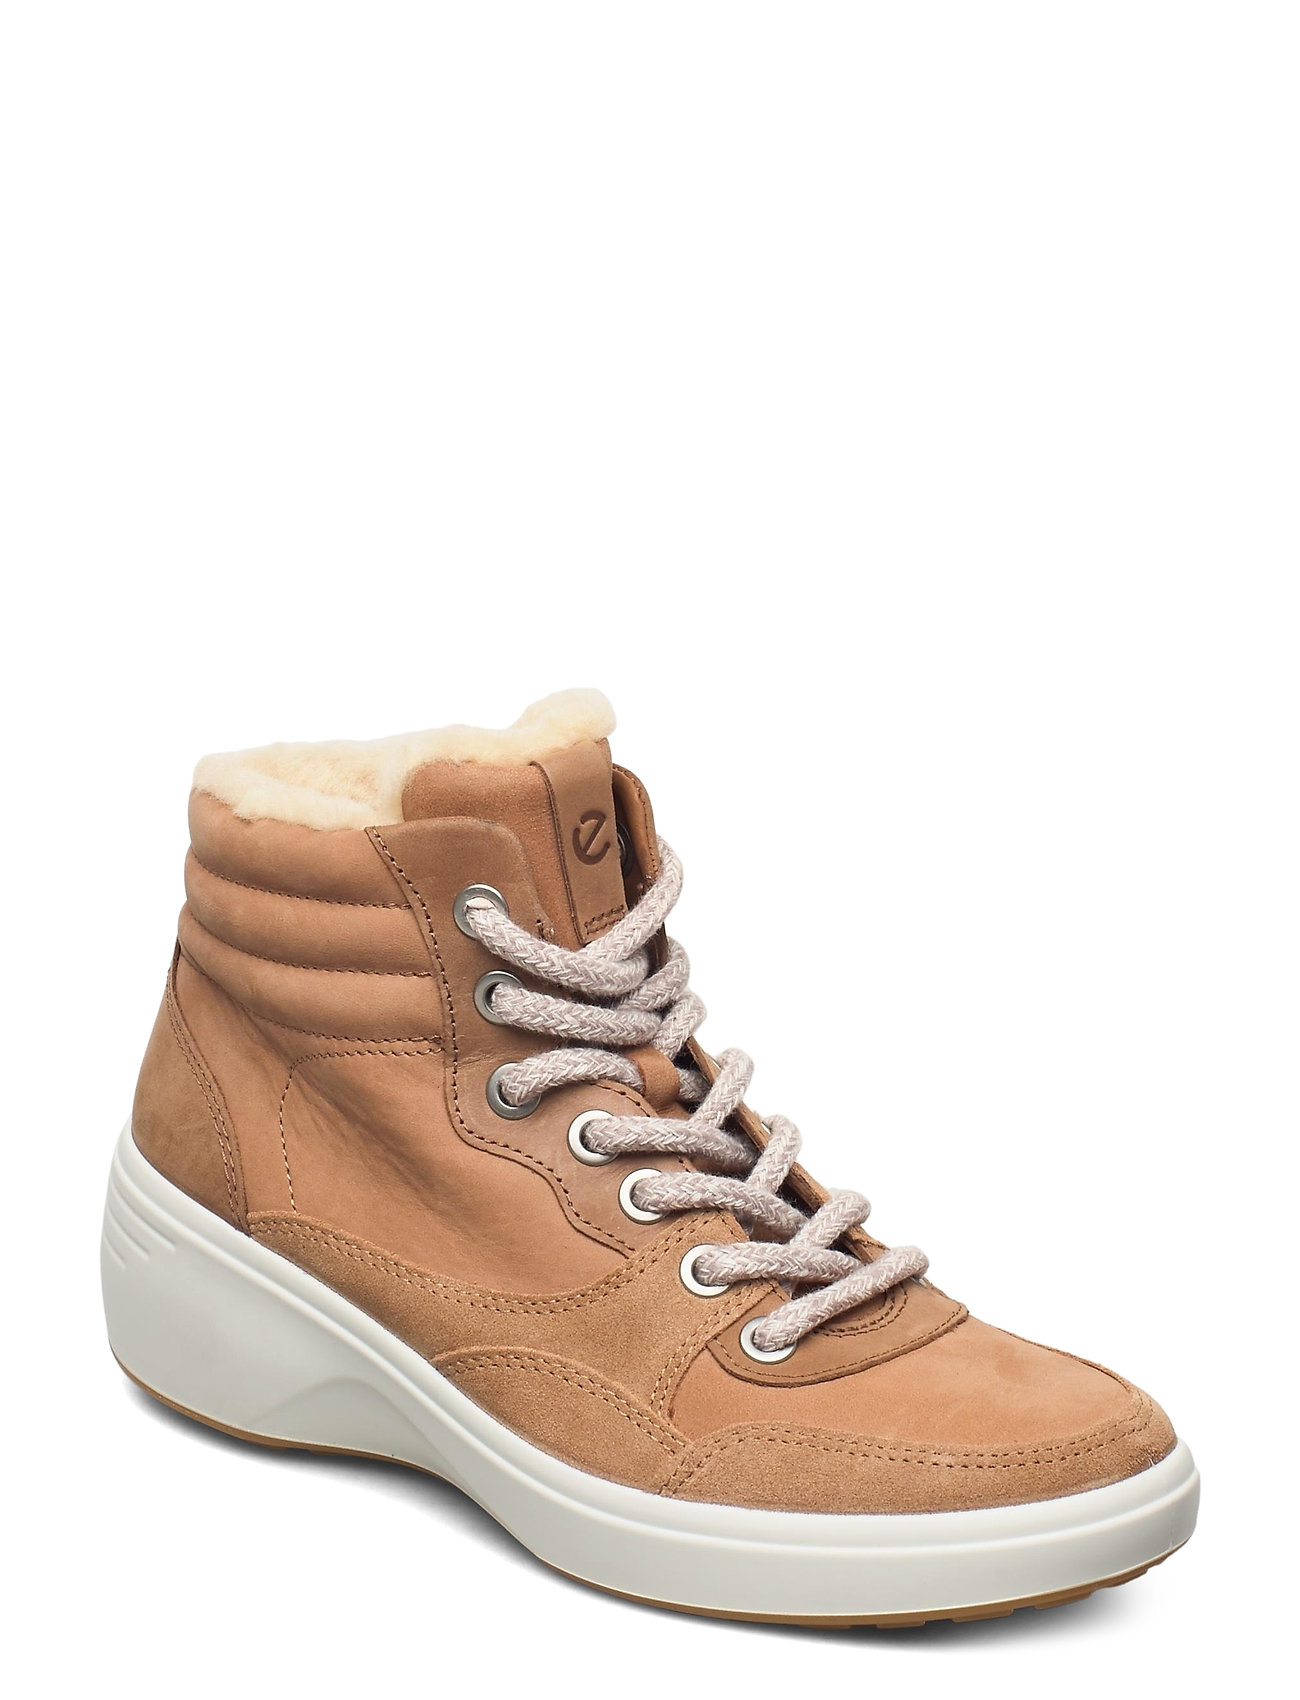 Image of Soft 7 Wedge Tred Shoes Boots Ankle Boots Ankle Boot - Flat Brun ECCO (3446803463)